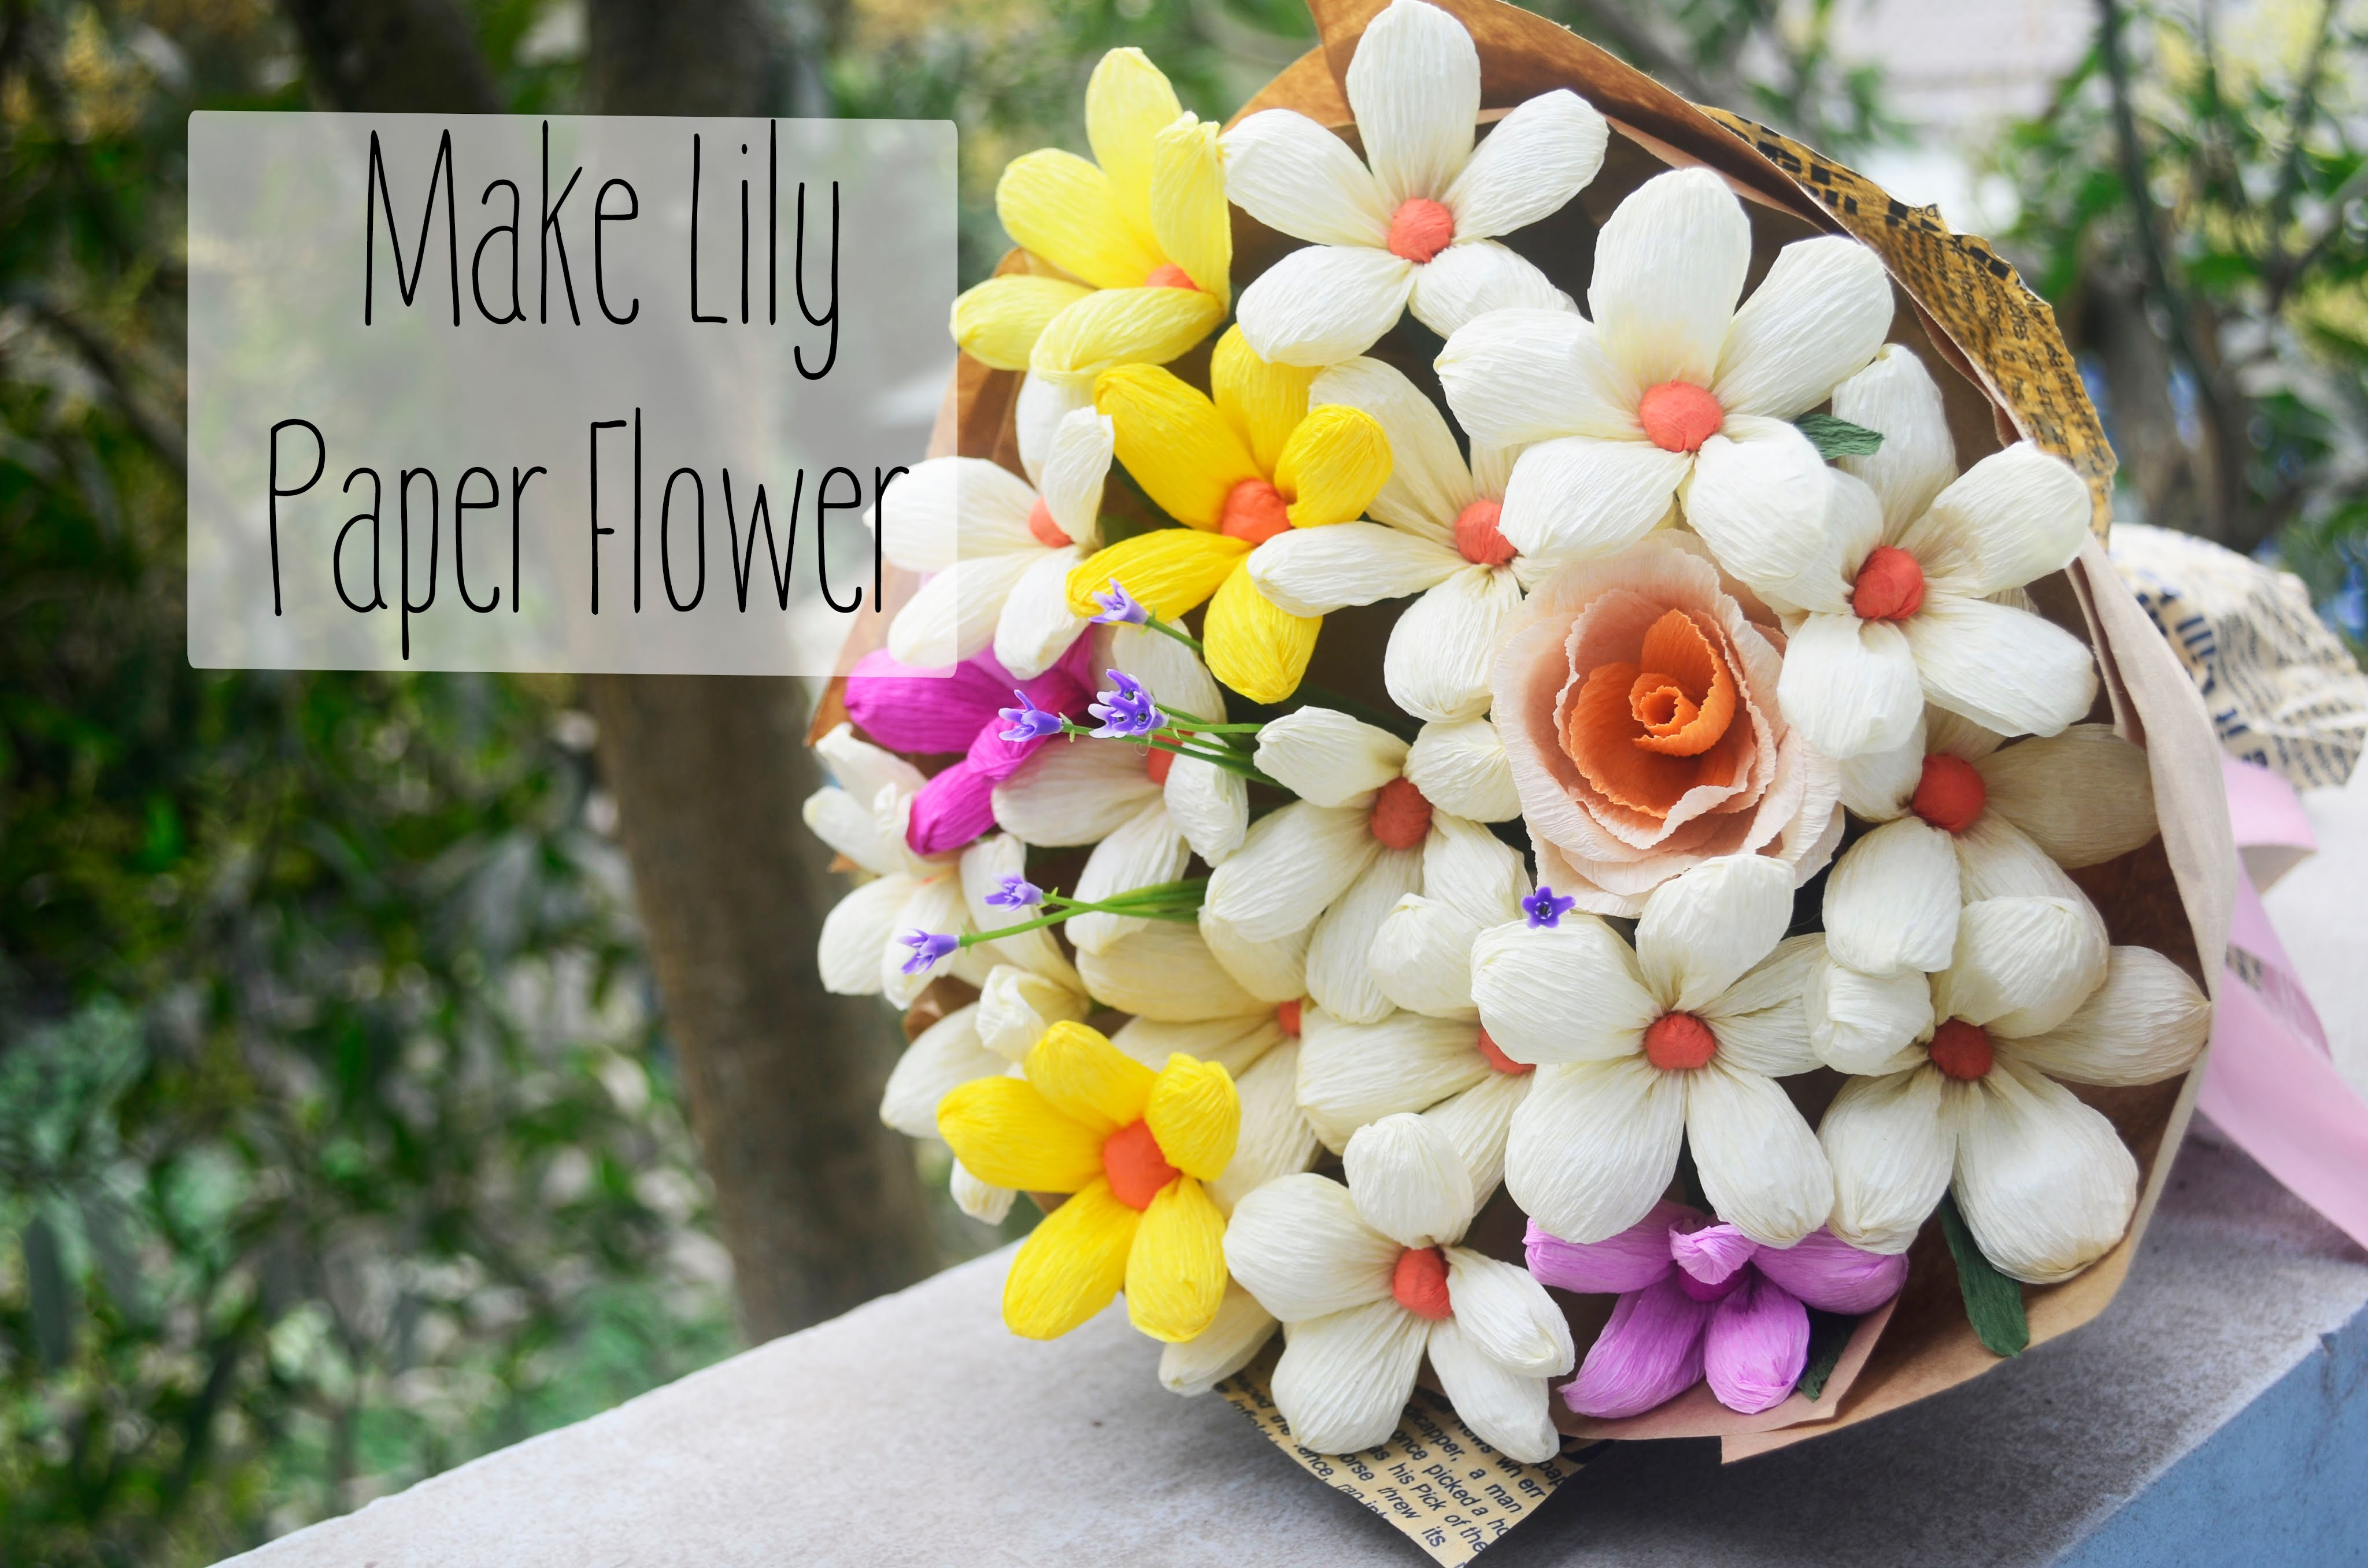 How To Easy Make Lily Paper Flower Home Pictures Easy Tips